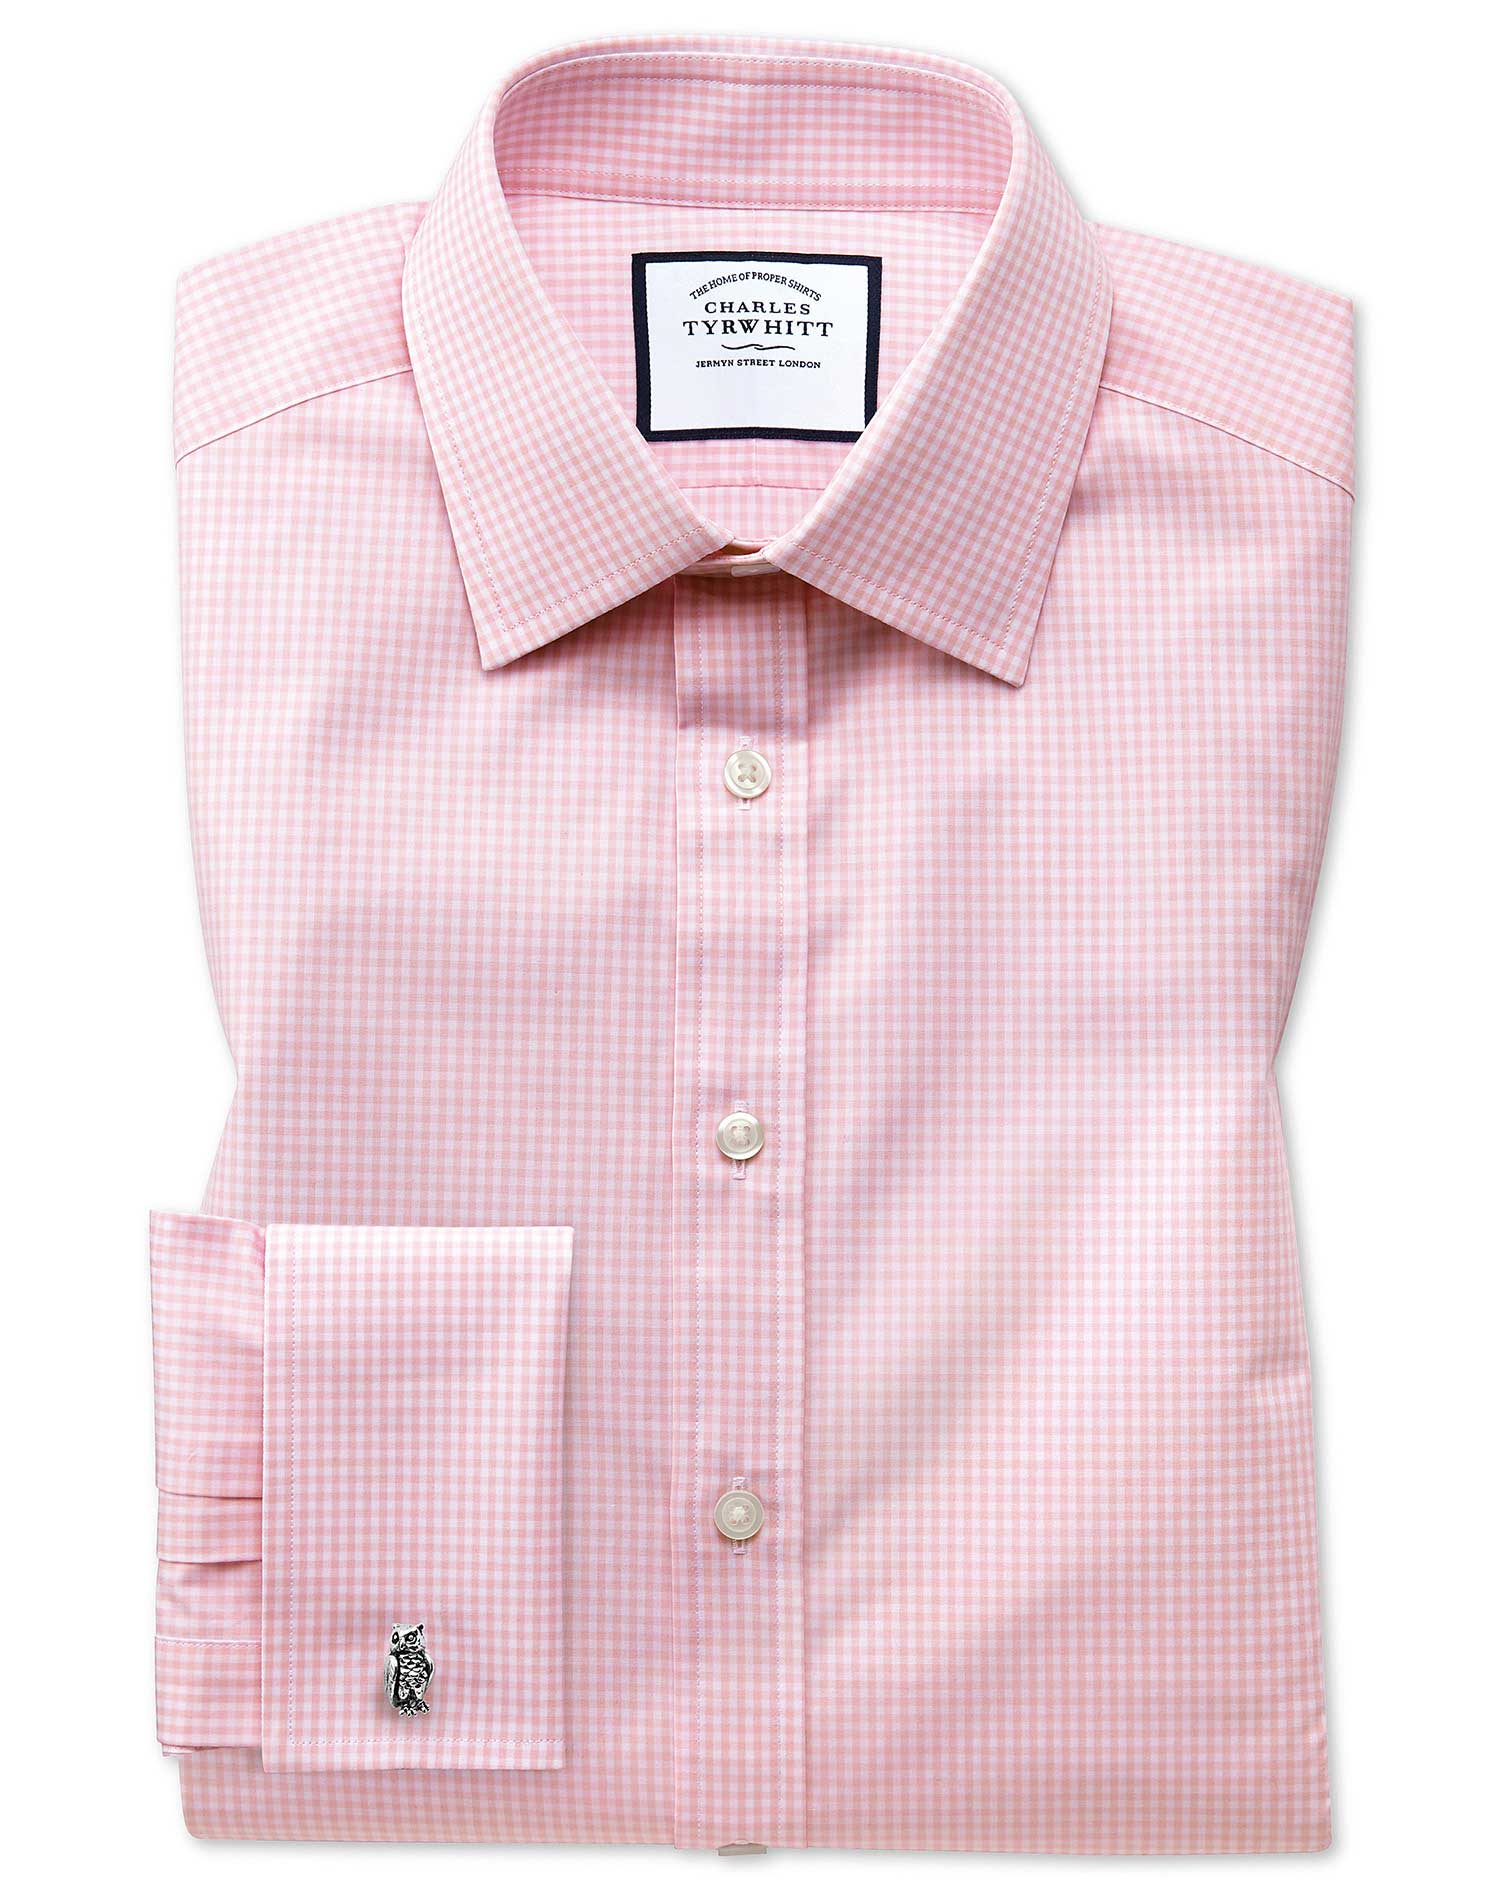 Slim Fit Small Gingham Light Pink Cotton Formal Shirt Double Cuff Size 18/35 by Charles Tyrwhitt